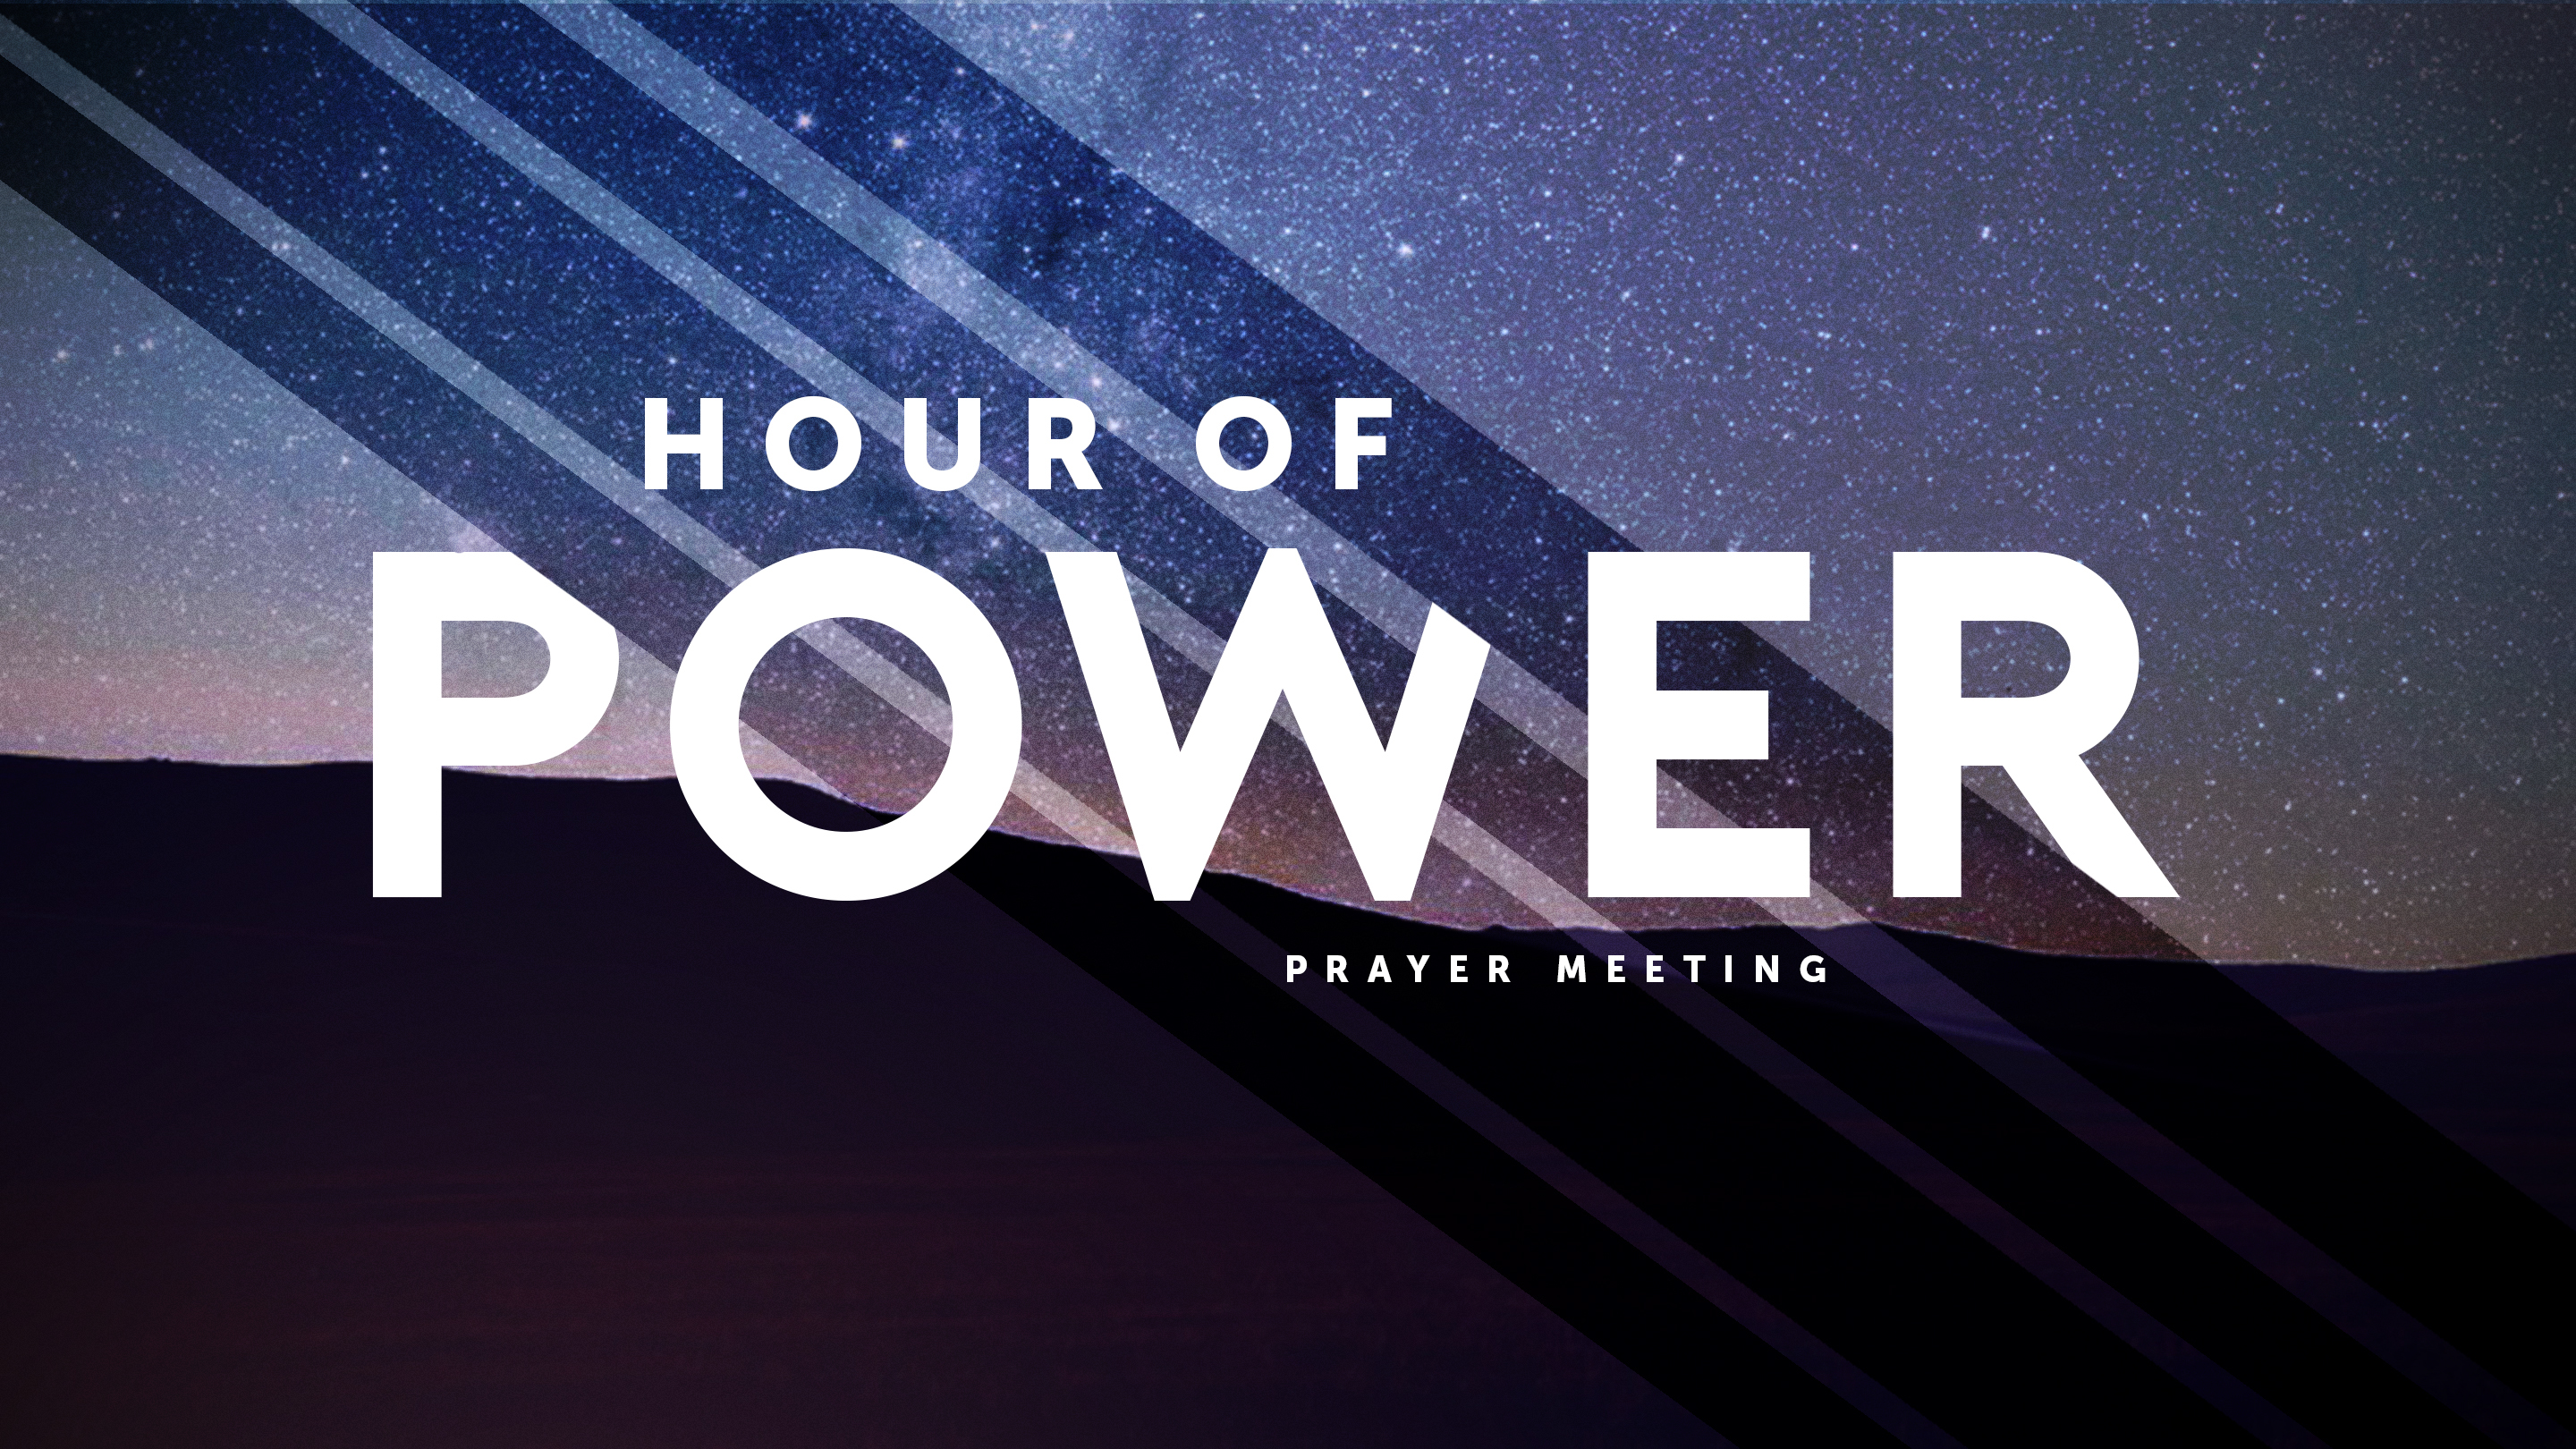 Artwork I Designed To Promote A Monthly Prayer Meeting For The Peninsula  Pentecostals